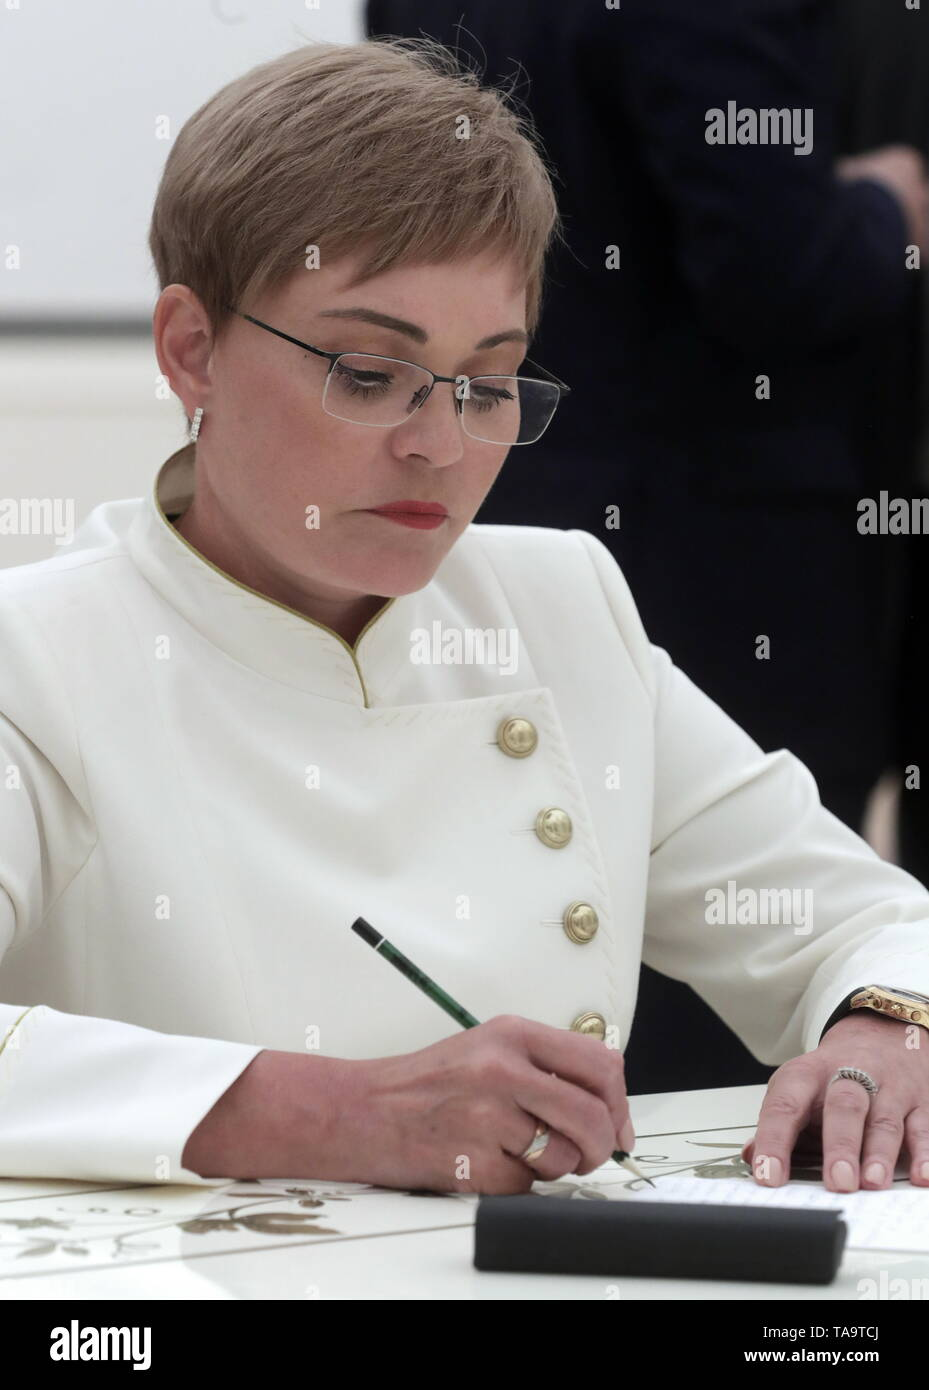 Moscow, Russia. 23rd May, 2019. MOSCOW, RUSSIA - MAY 23, 2019: Former Murmansk Region Governor Marina Kovtun during a meeting of Russia's President Vladimir Putin with former heads of Russian regions, at the Moscow Kremlin. Mikhail Metzel/TASS Credit: ITAR-TASS News Agency/Alamy Live News - Stock Image